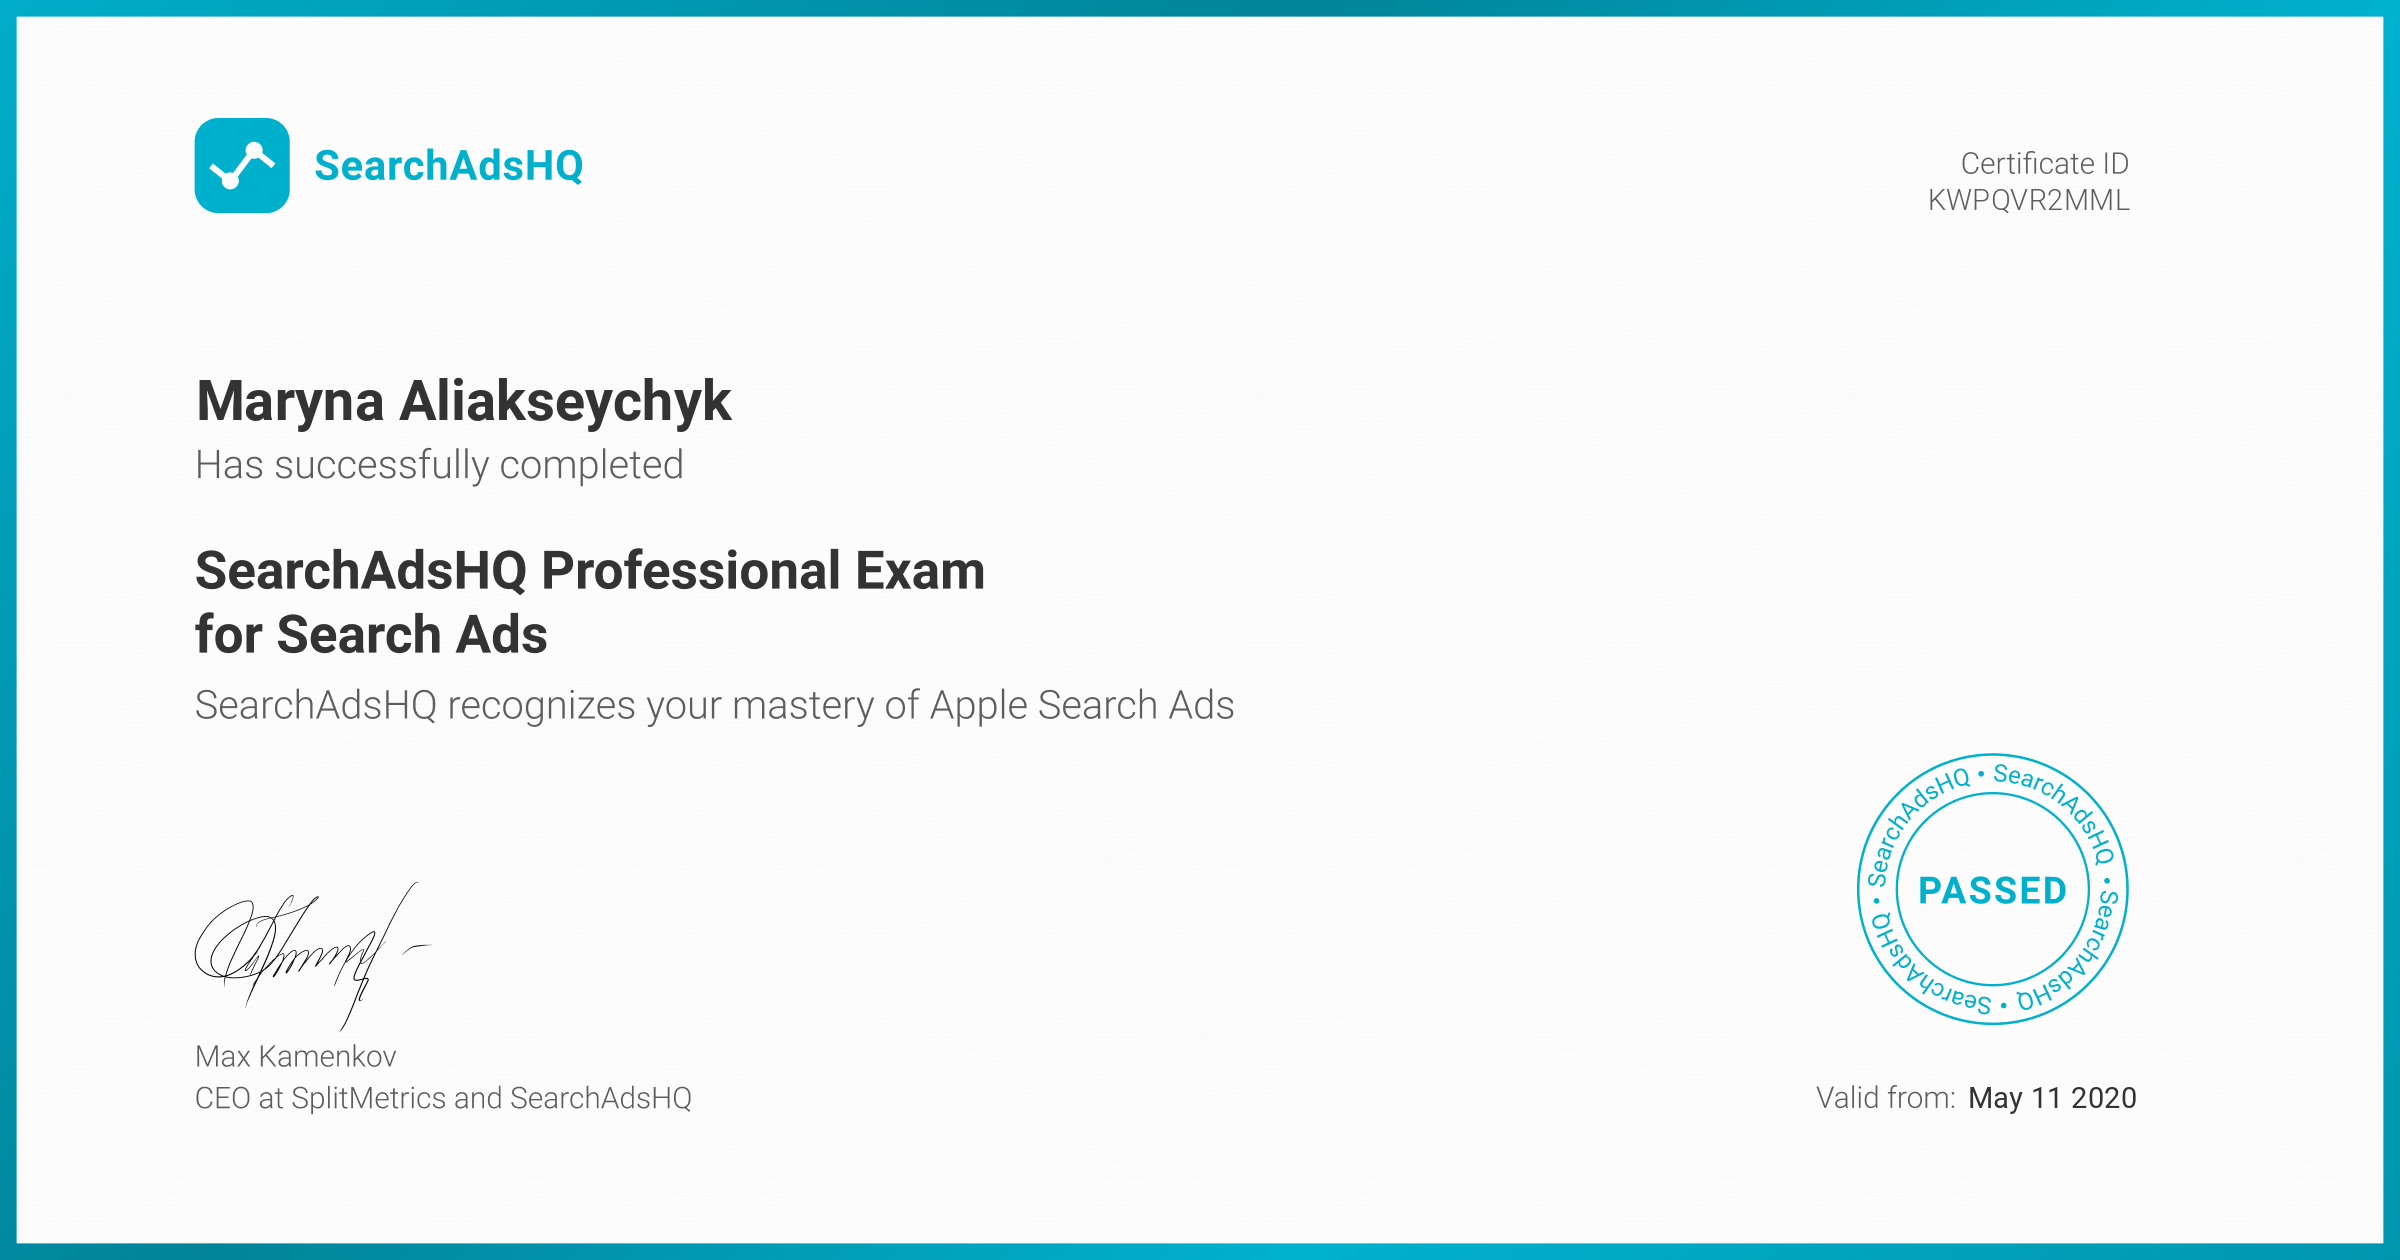 Certificate for Maryna Aliakseychyk | SearchAdsHQ Professional Exam for Search Ads